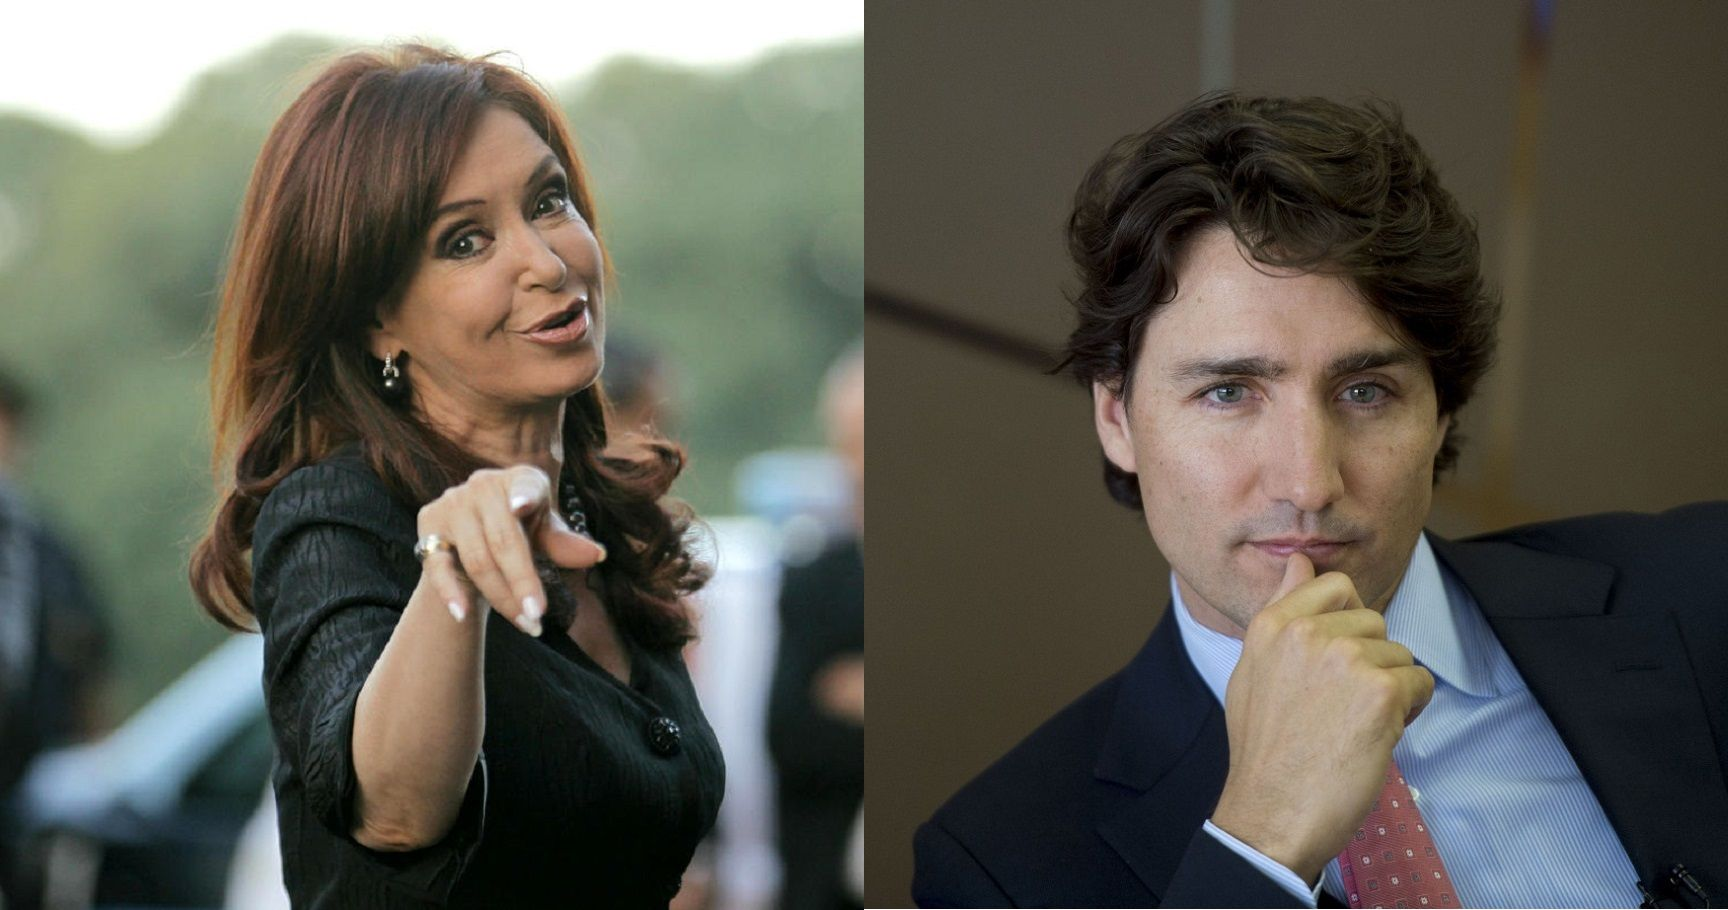 The 10 Most Attractive World Leaders